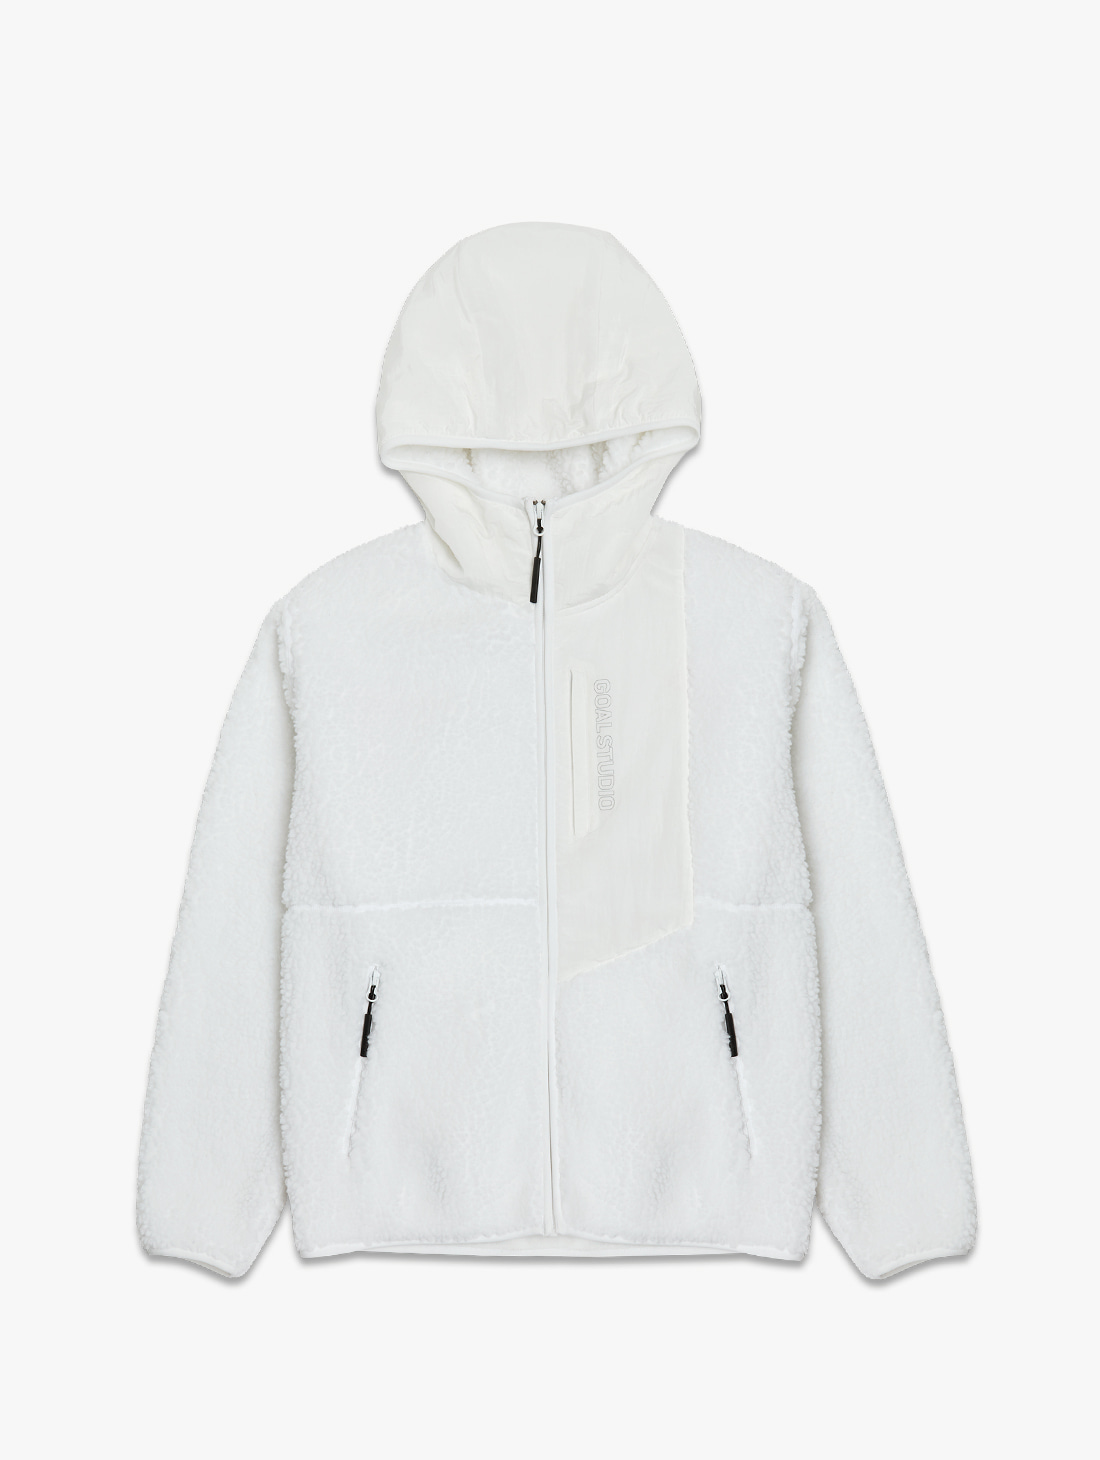 SHERPA FLEECE HOODED JACKET (2 Colors)